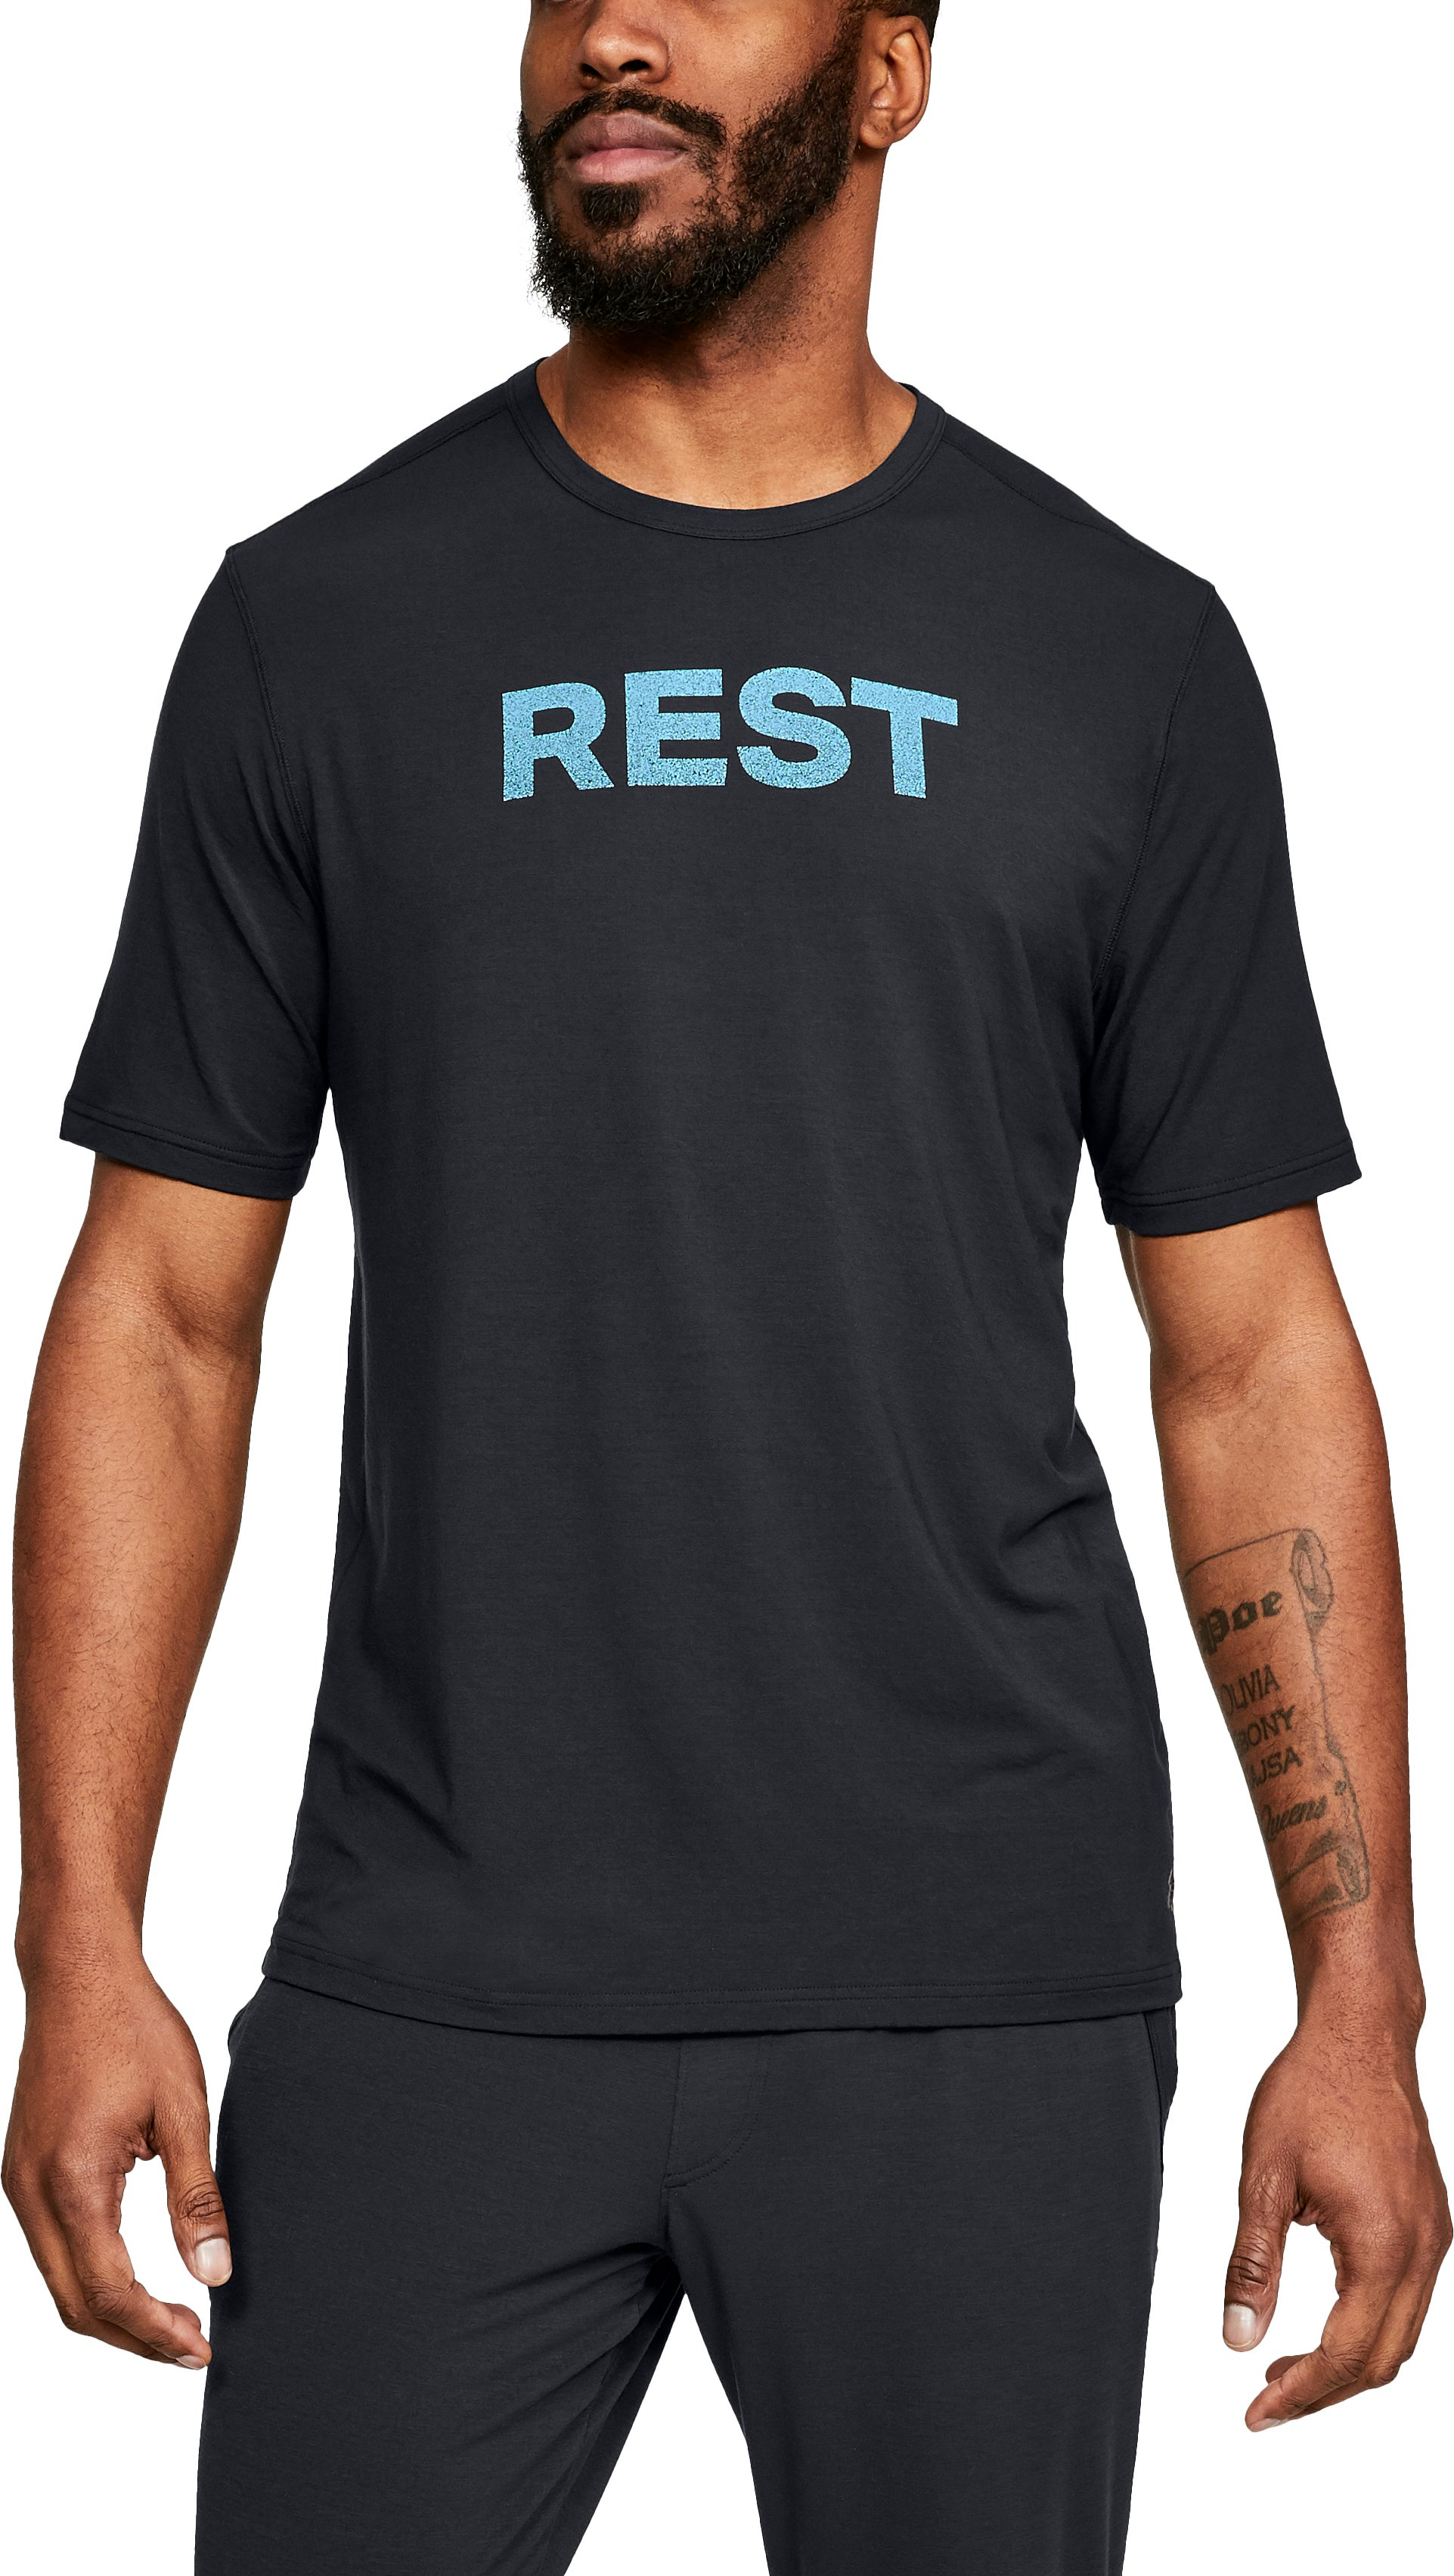 Men's Athlete Recovery Ultra Comfort Sleepwear REST Graphic T-Shirt, Black